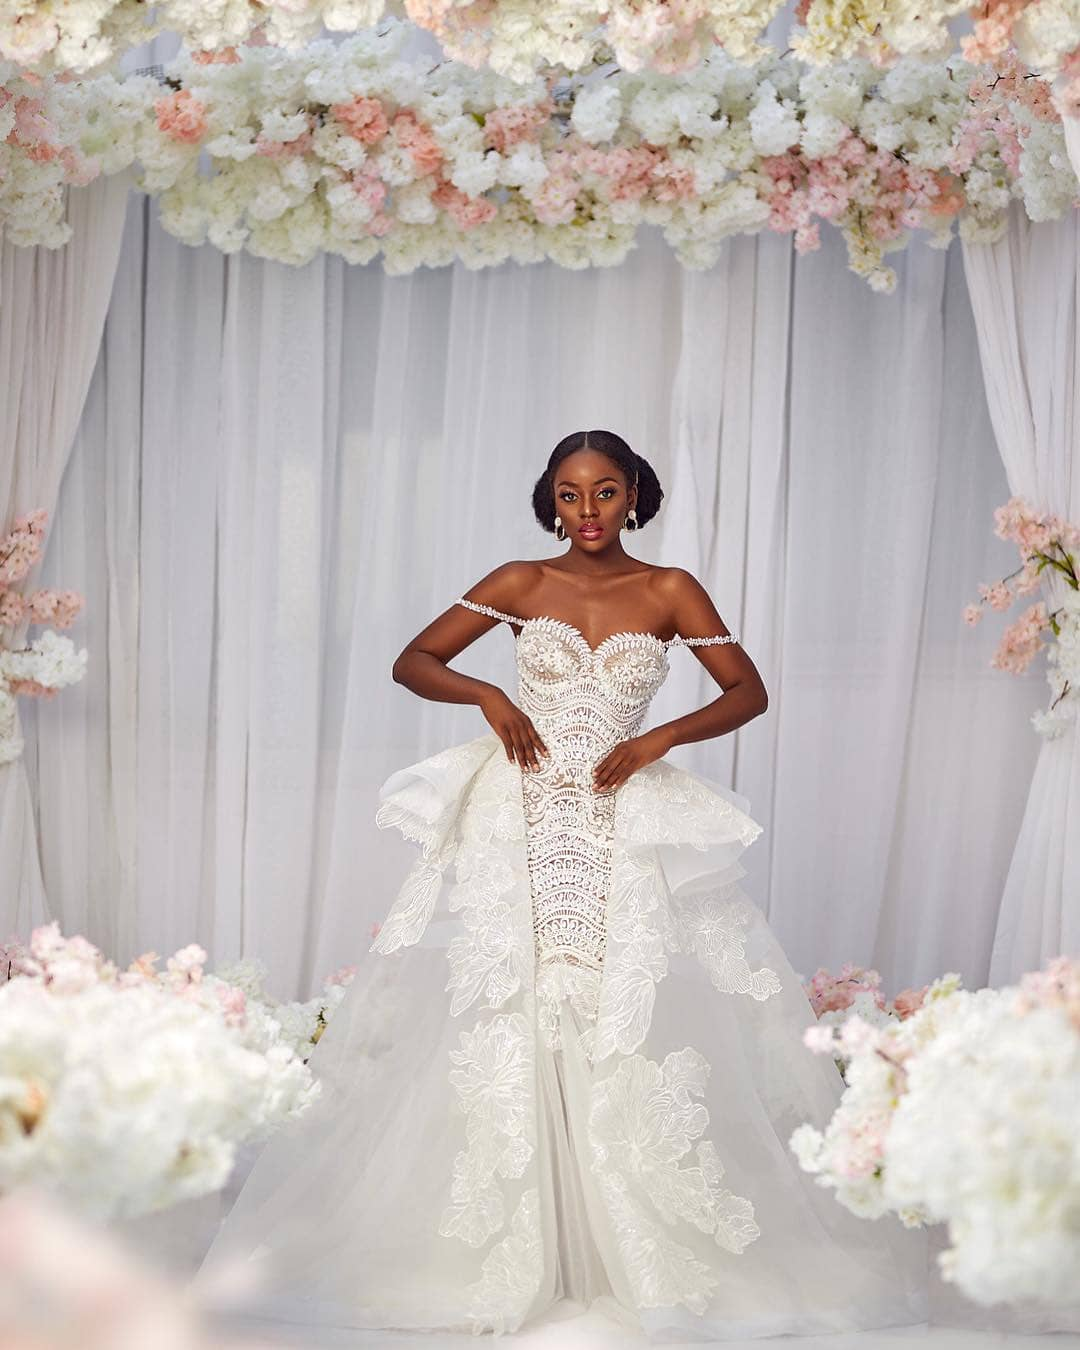 What Song Do Brides Walk Down The Aisle To: These Bomb Wedding Gowns Will Make You Want To Walk Down